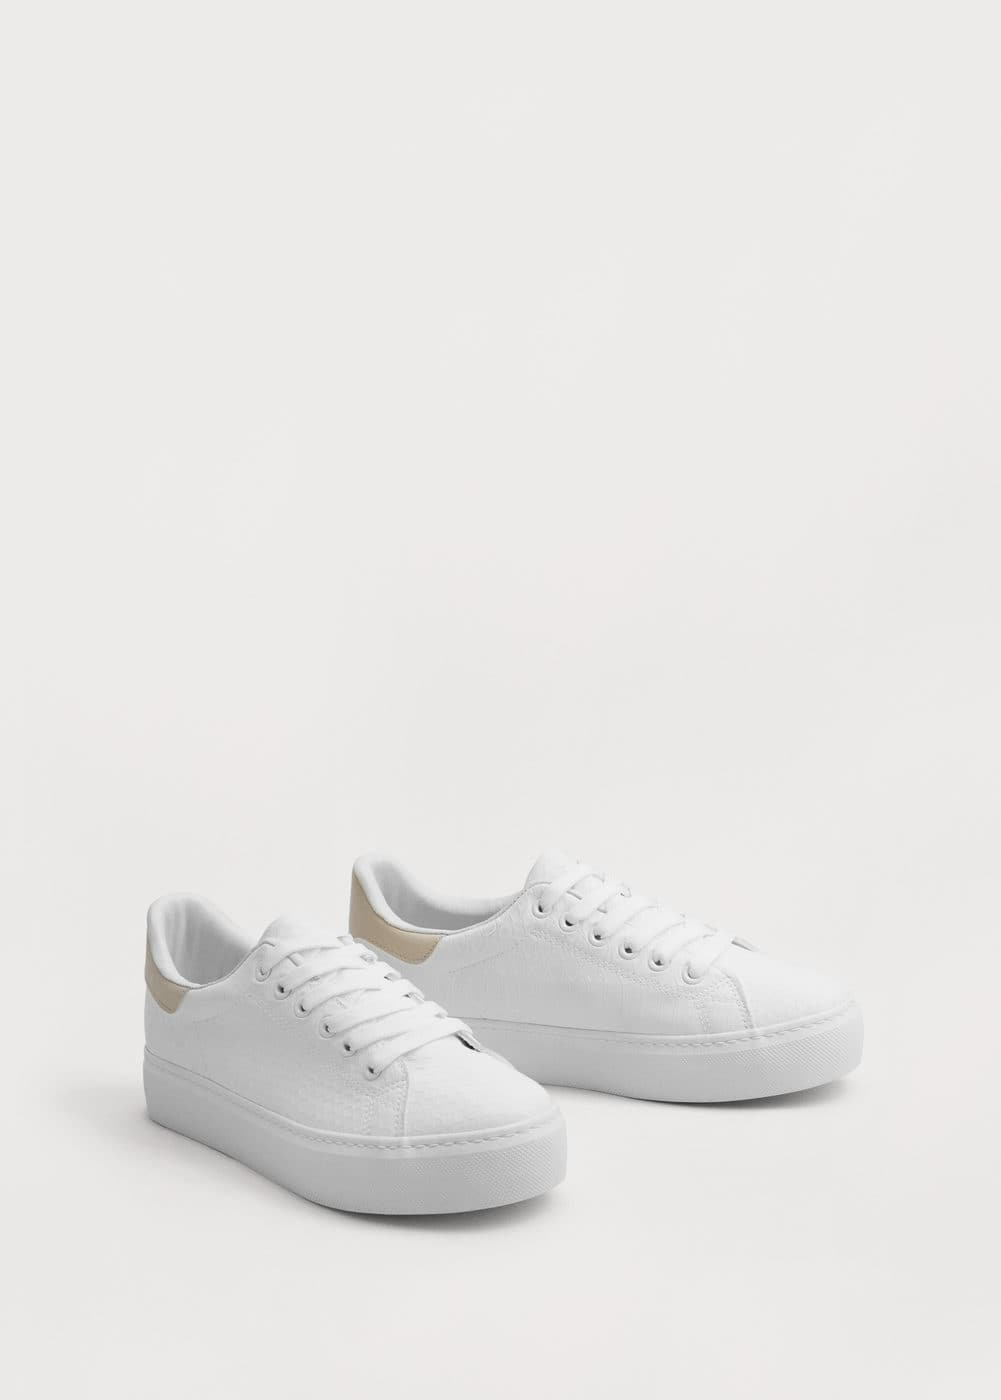 Platform lace-up sneakers | VIOLETA BY MANGO